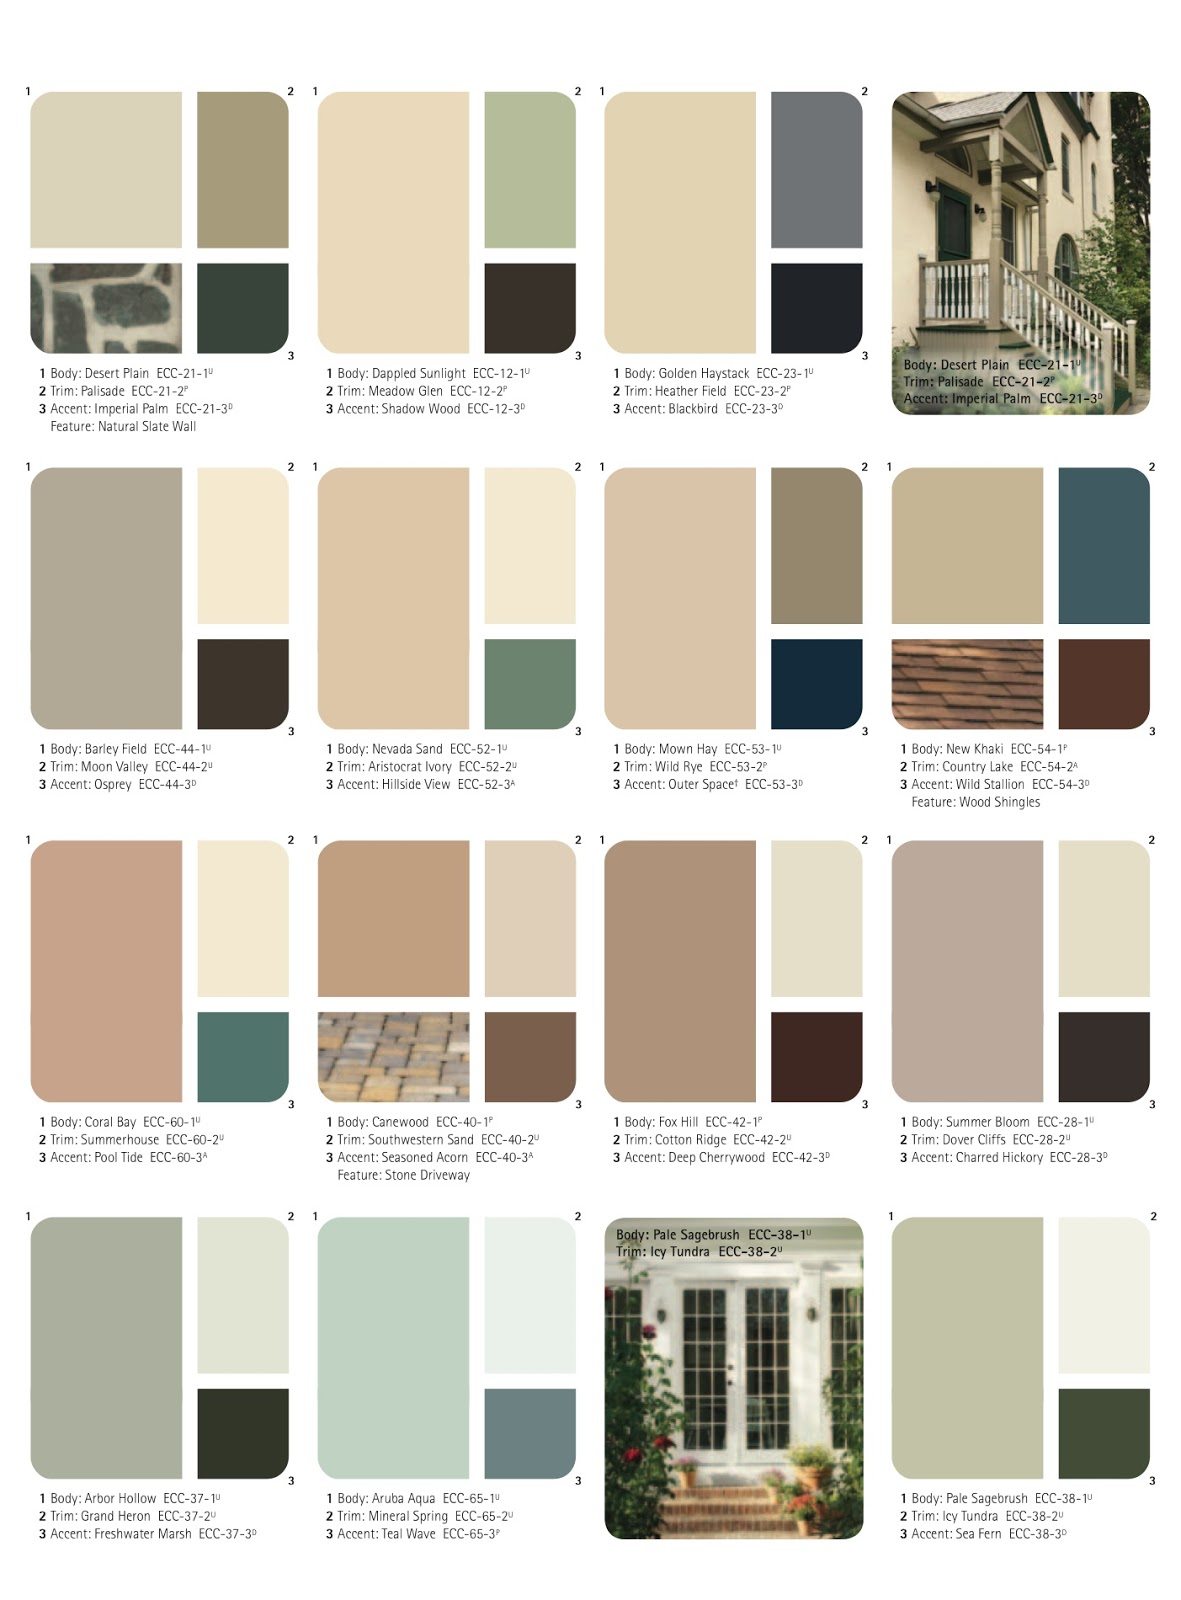 Home depot house paint home painting ideas for Exterior house paint schemes